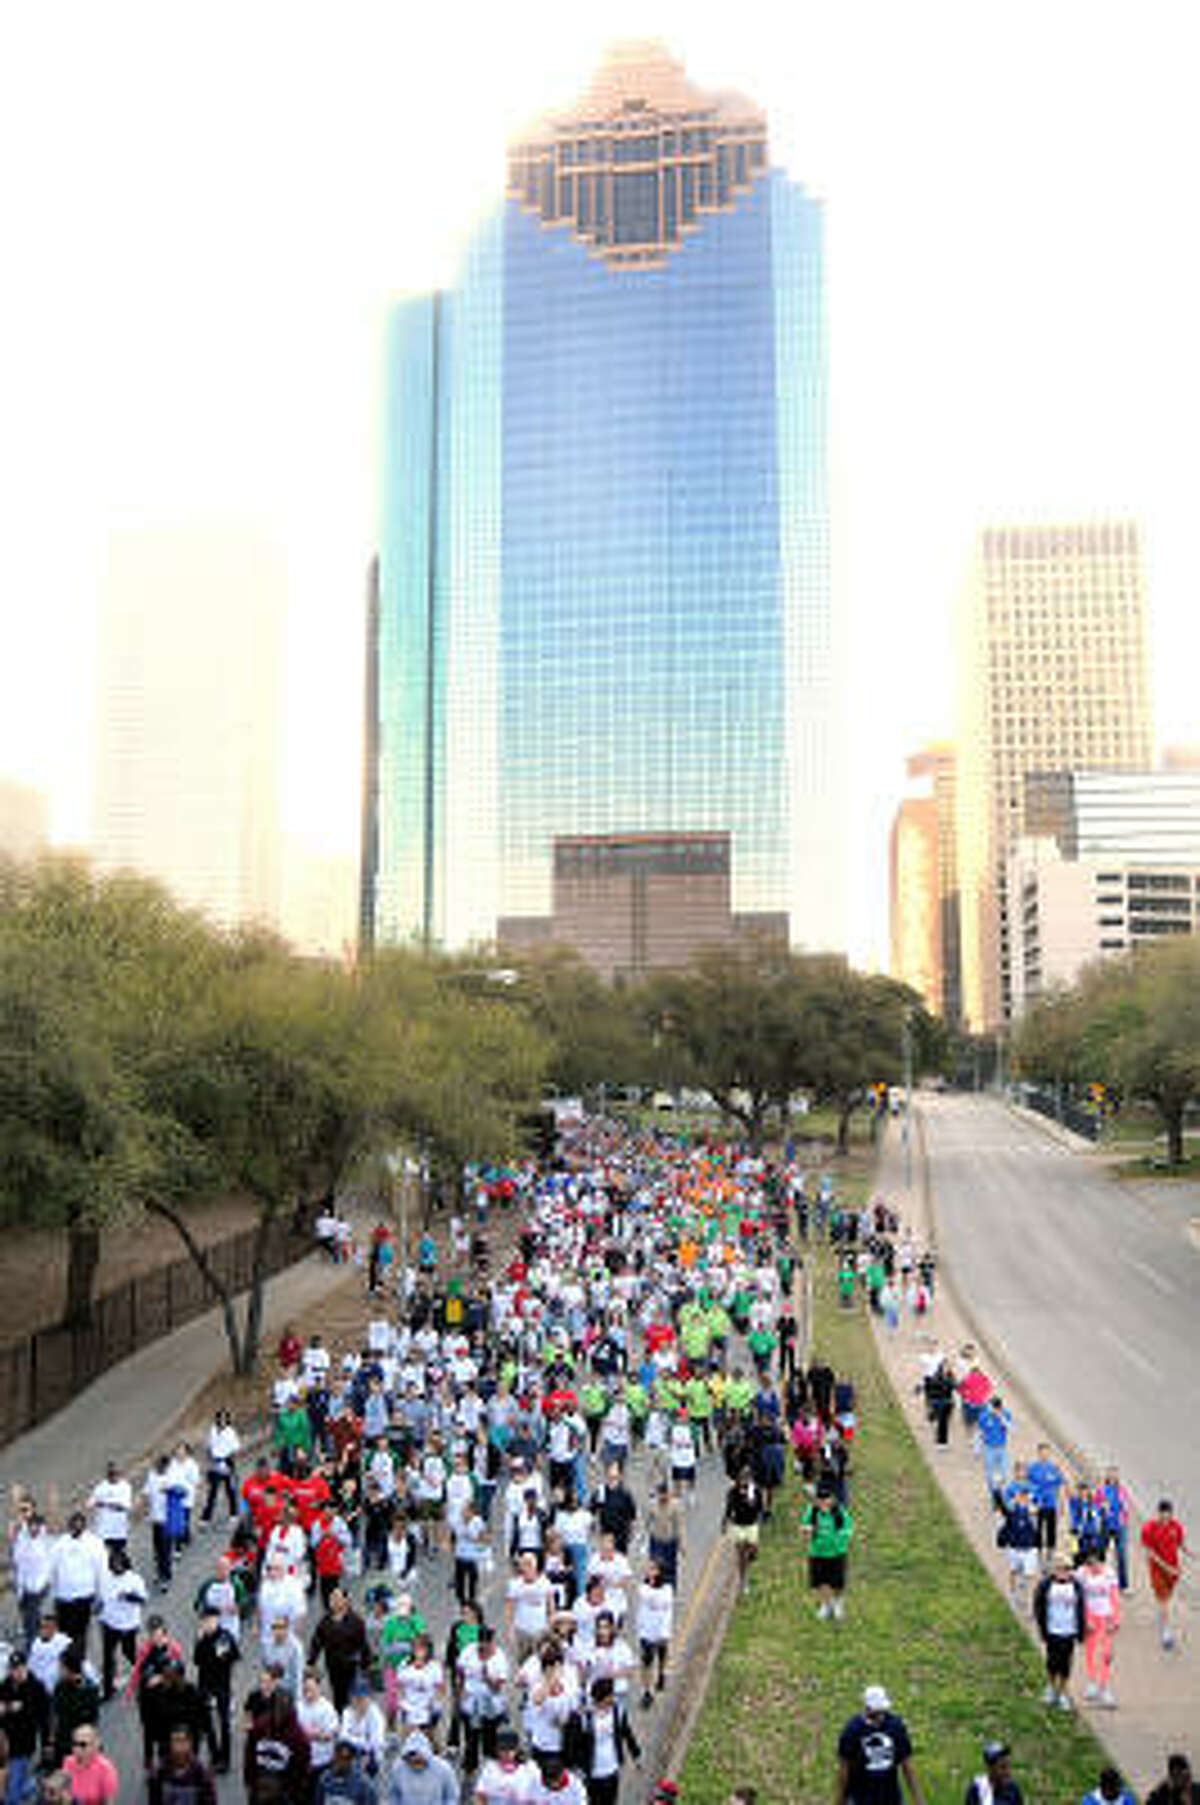 It was a beautiful, sunny day to step up for a good cause.